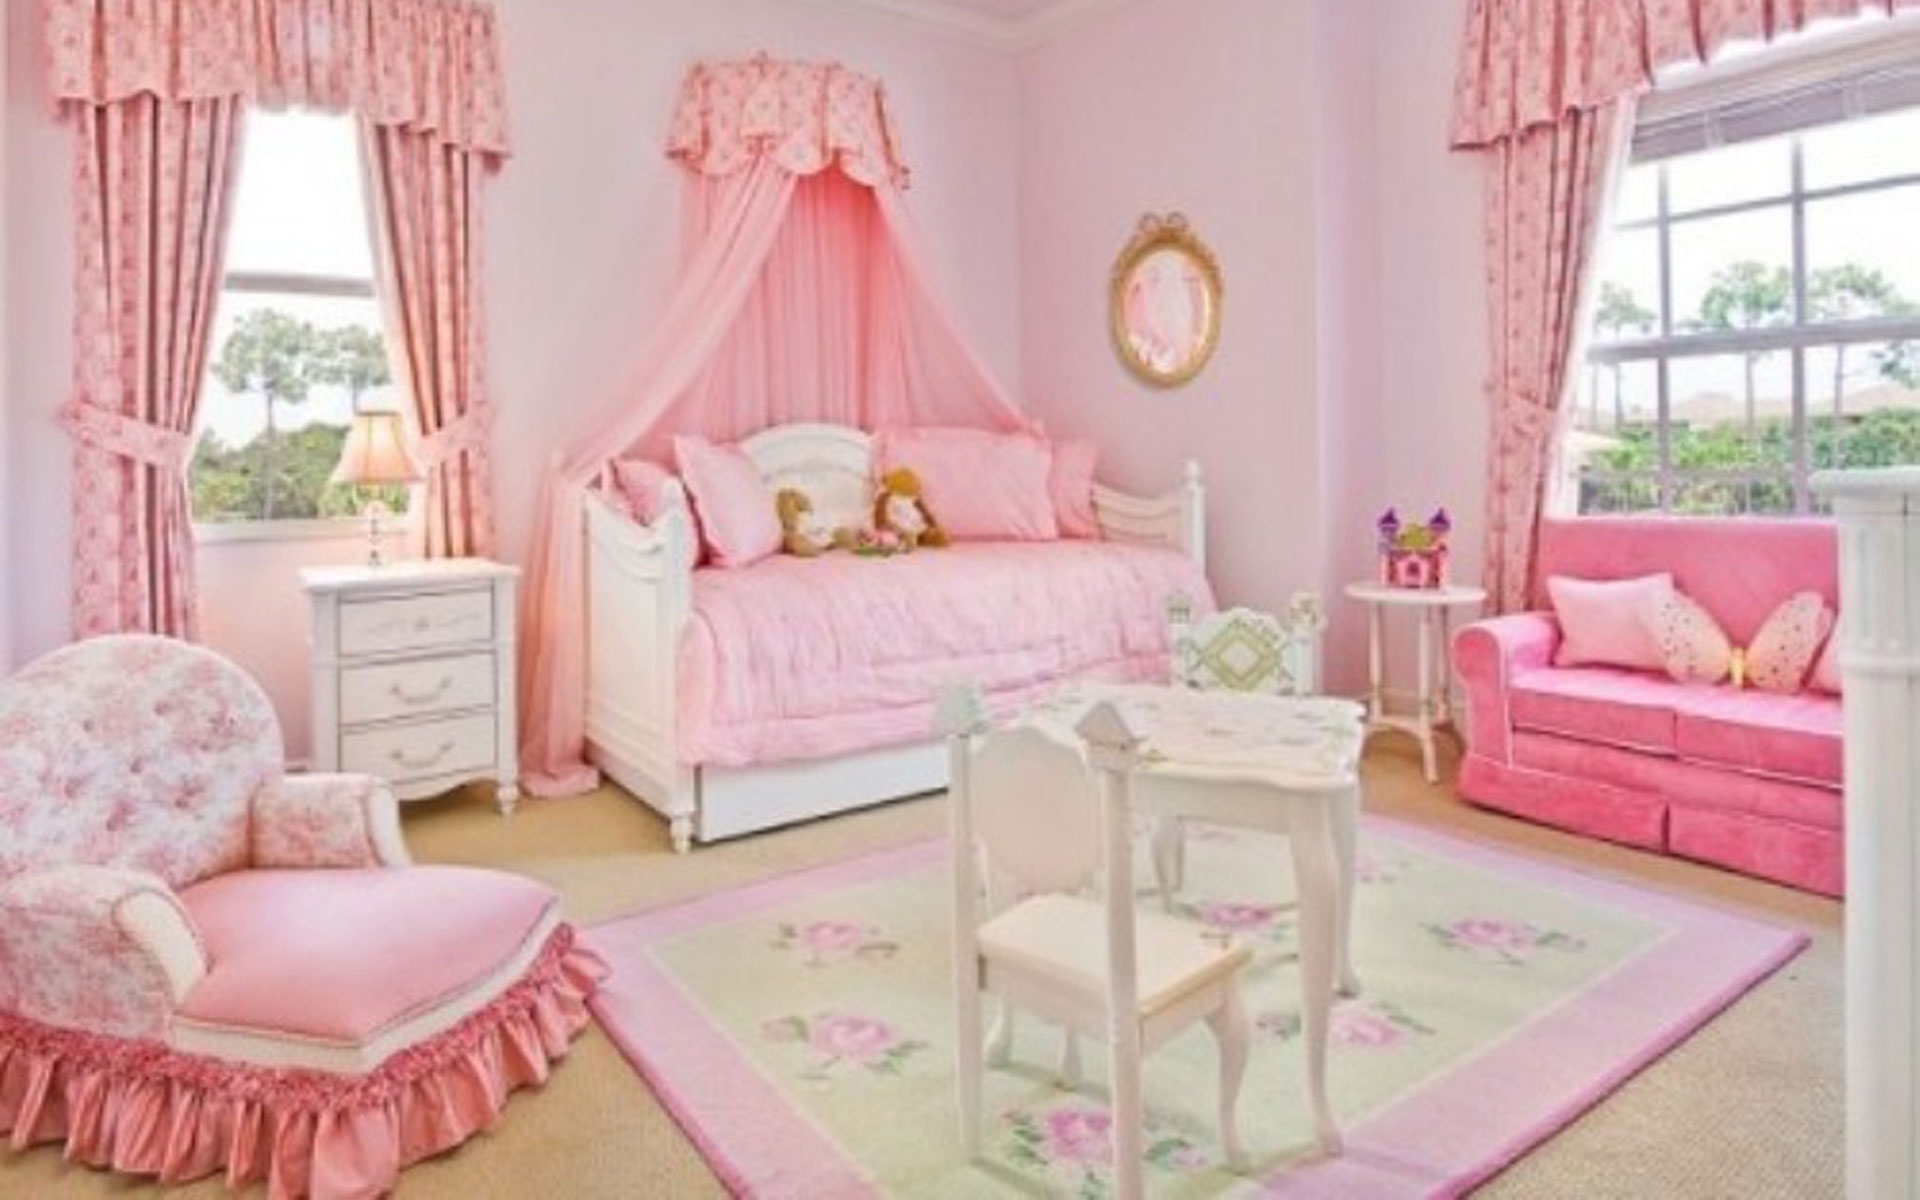 Whimsical Bedrooms for Toddlers | HGTV